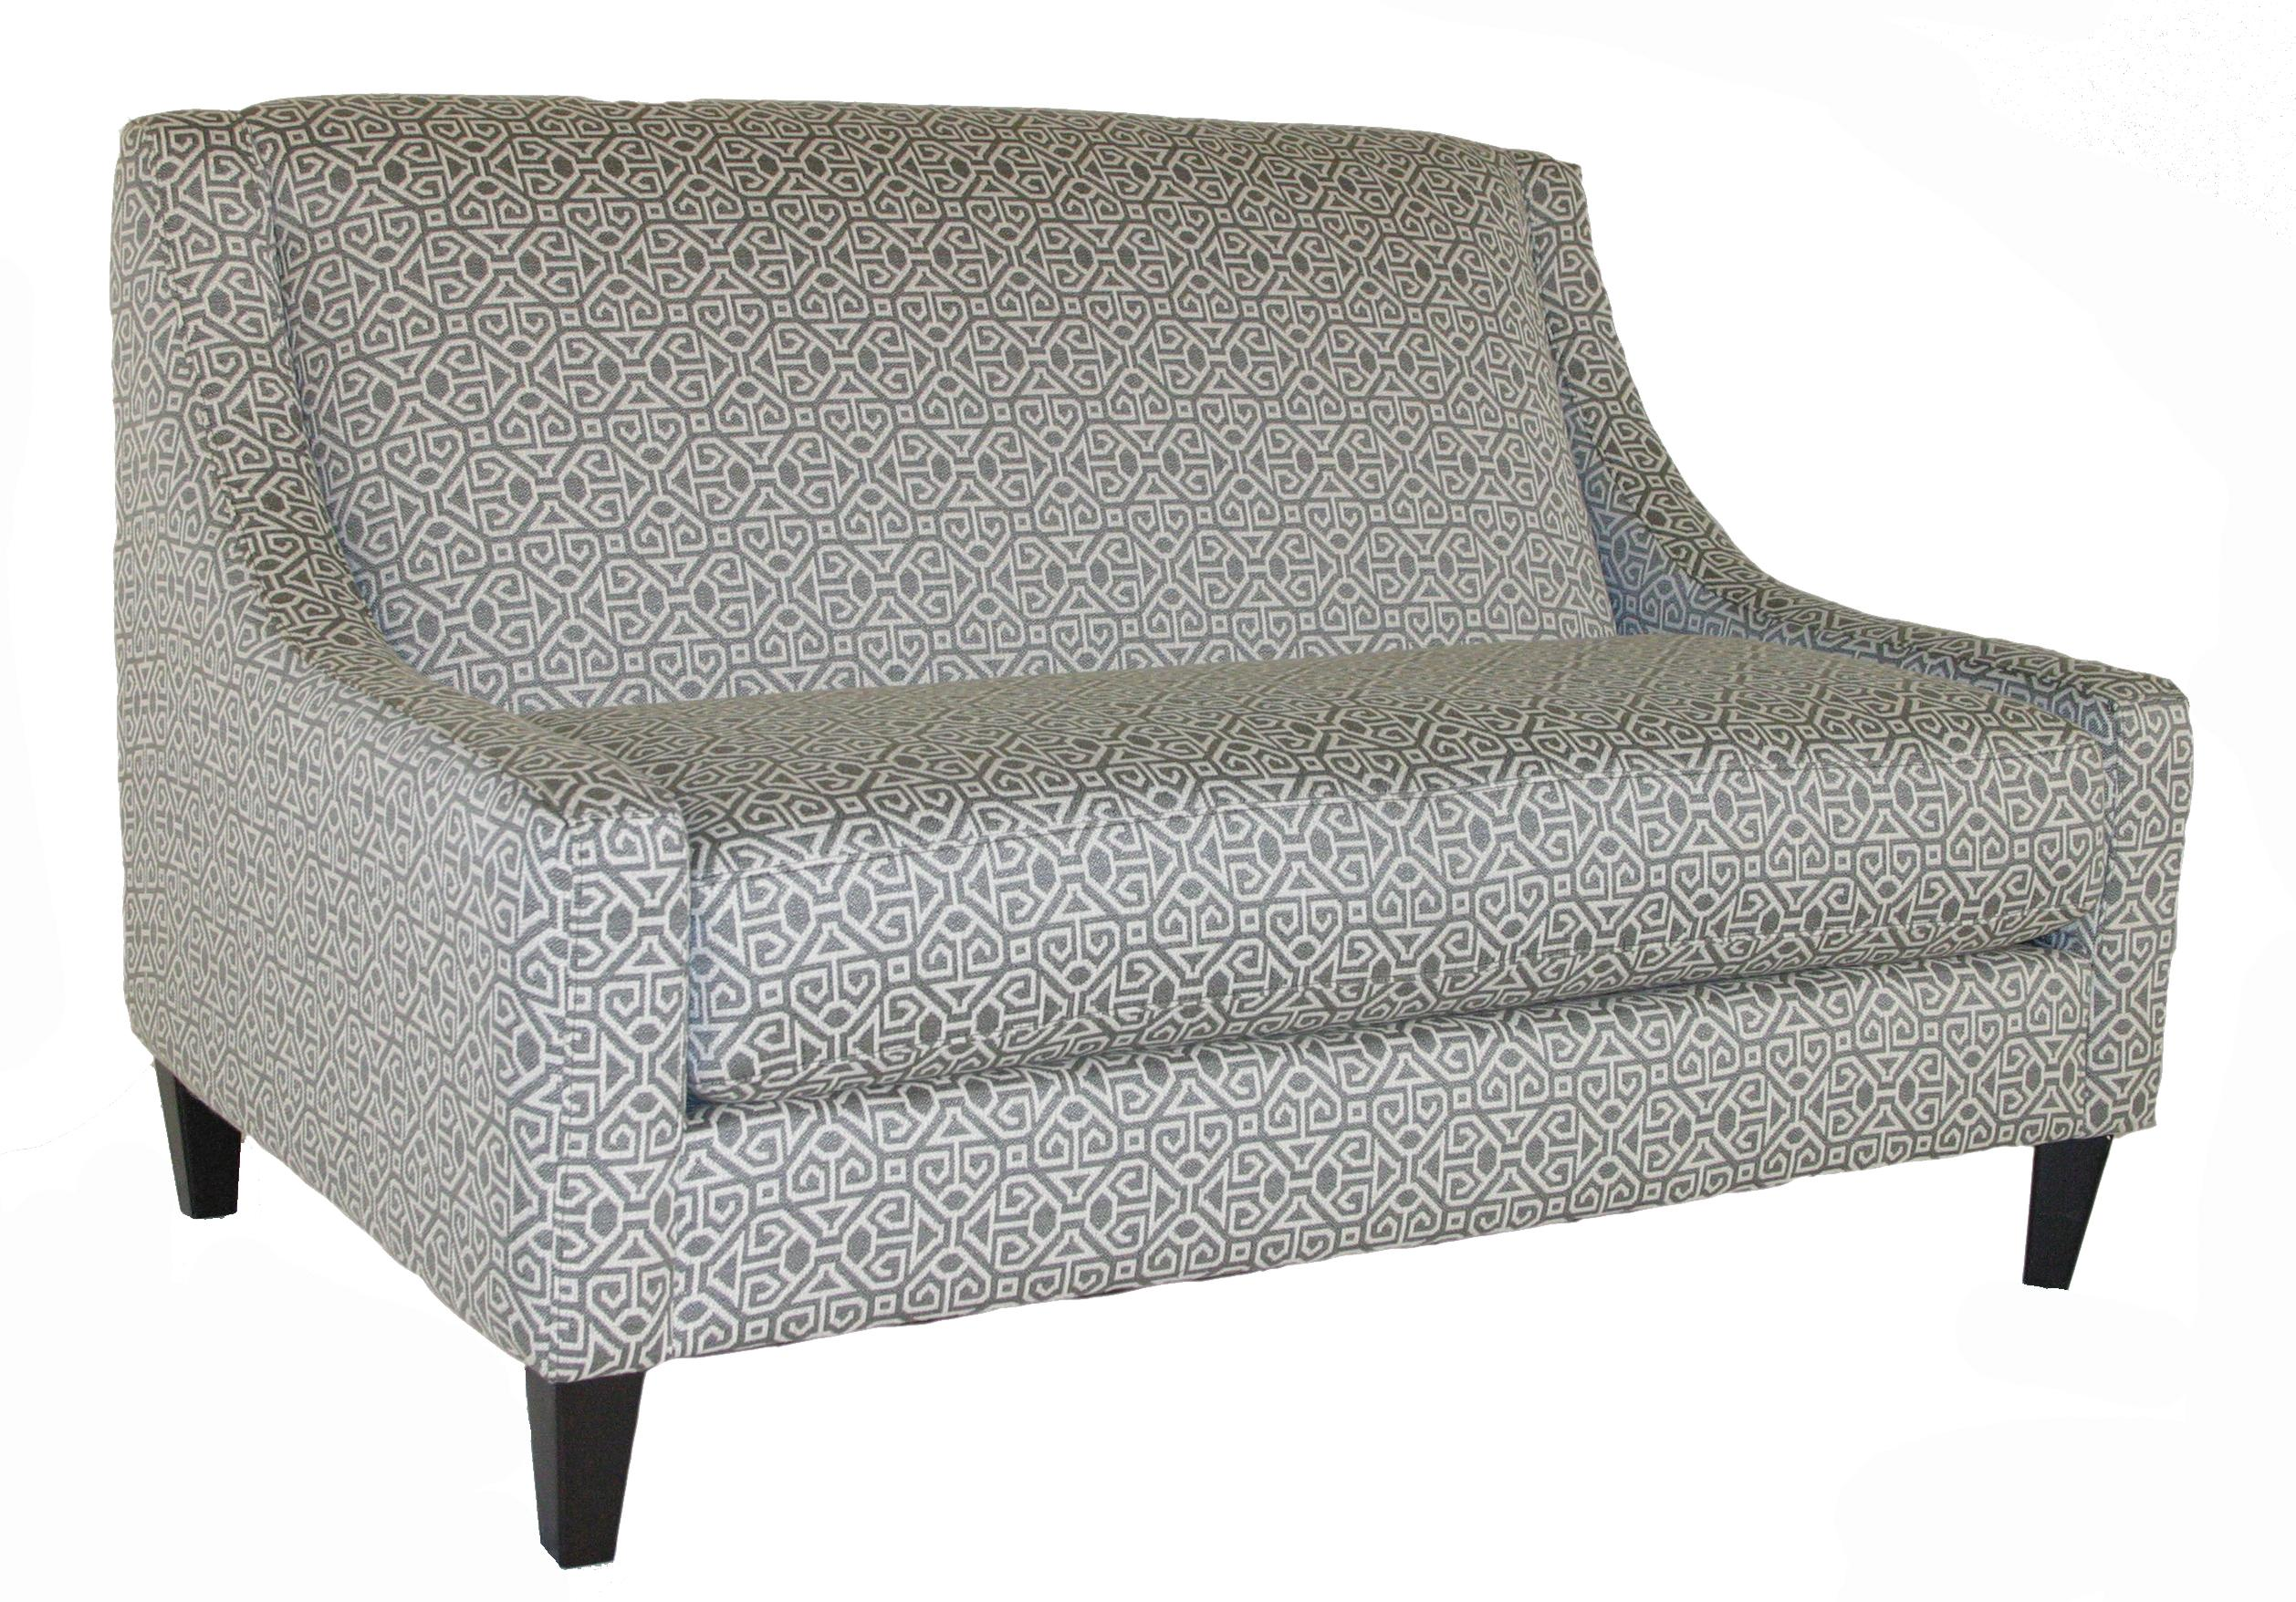 Bauhaus Connick Contemporary Settee - Item Number: 141V330 Luikin Pewter